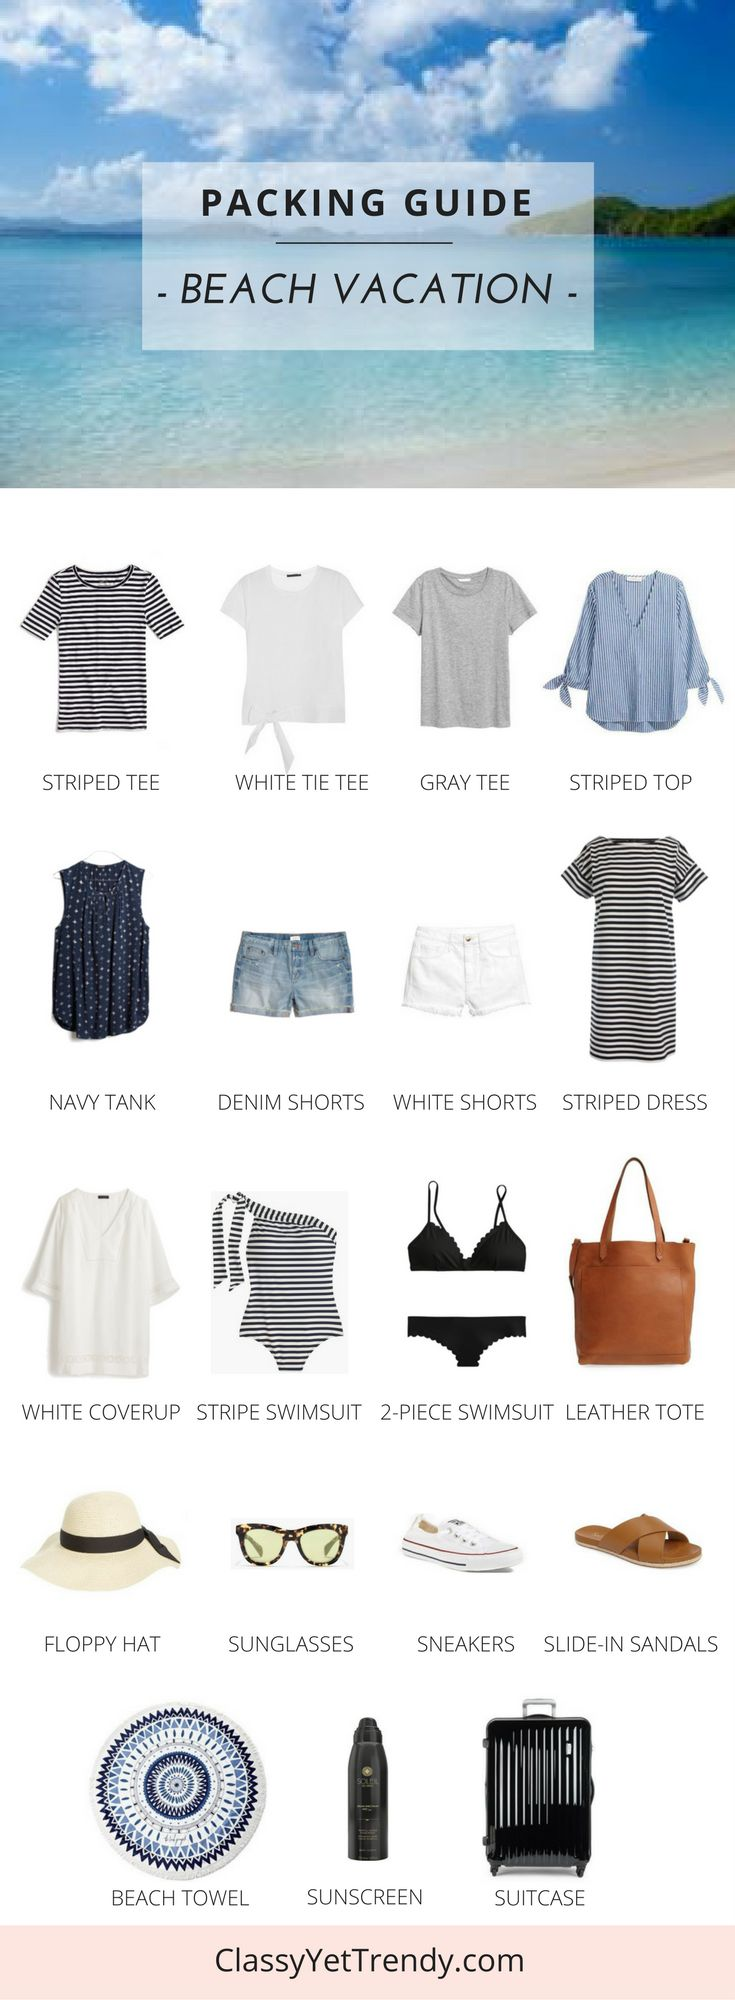 See what to pack for Spring Break or a Summer Vacation, with this packing guide and a few outfit ideas! You may already have these in your capsule wardrobe / closet: denim shorts, white shorts, striped tee, gray tee, white tie top, striped dress, navy tank, slide in sandals, converse sneakers, leather tote, swimsuit with linen coverup. They all fit in a carryon suitcase!